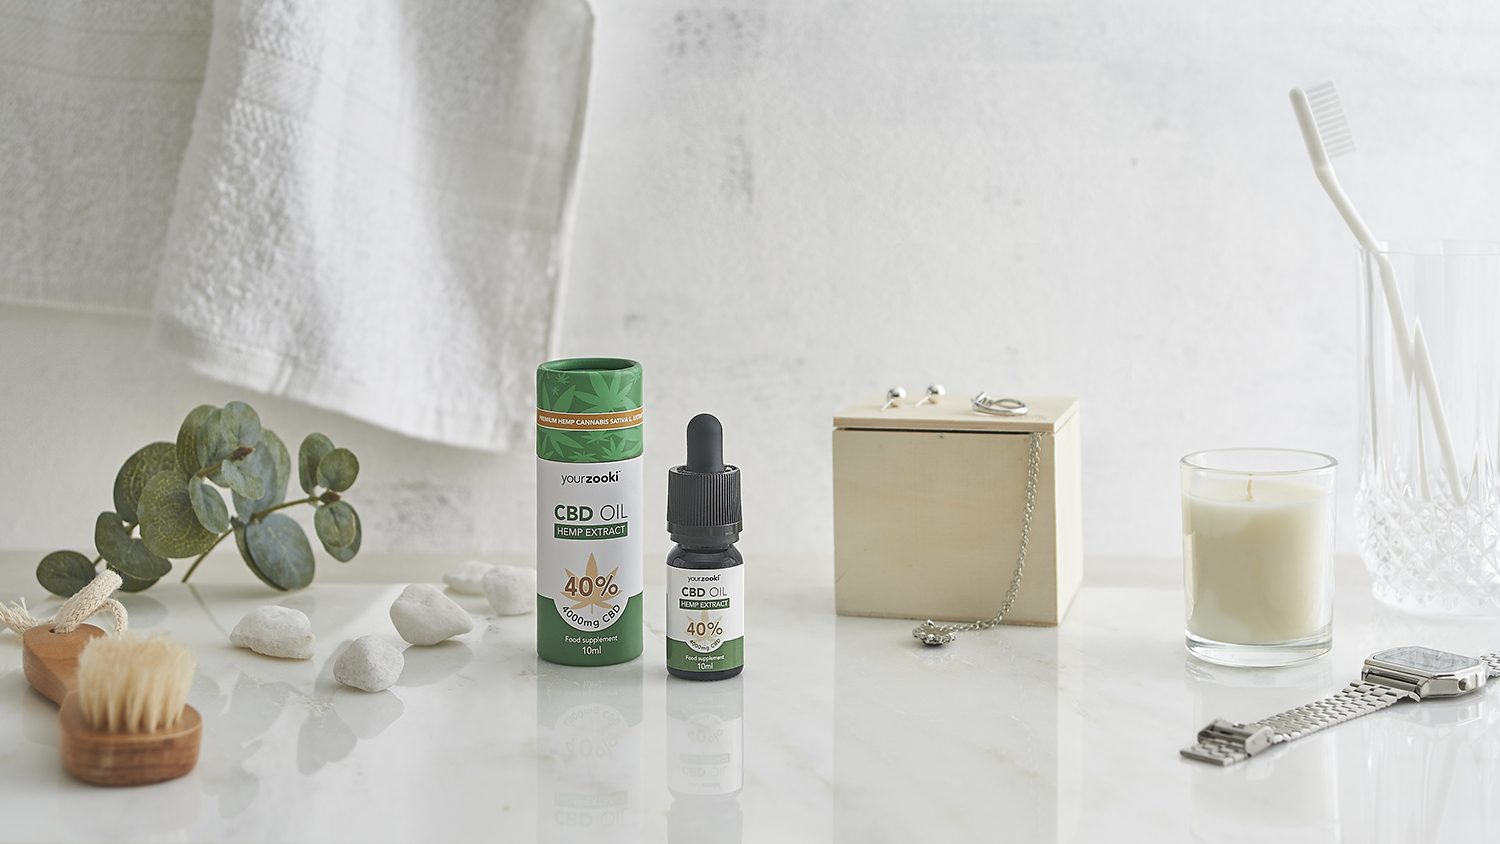 Lifestyle product photograph of a health supplement CBD oil apothecary